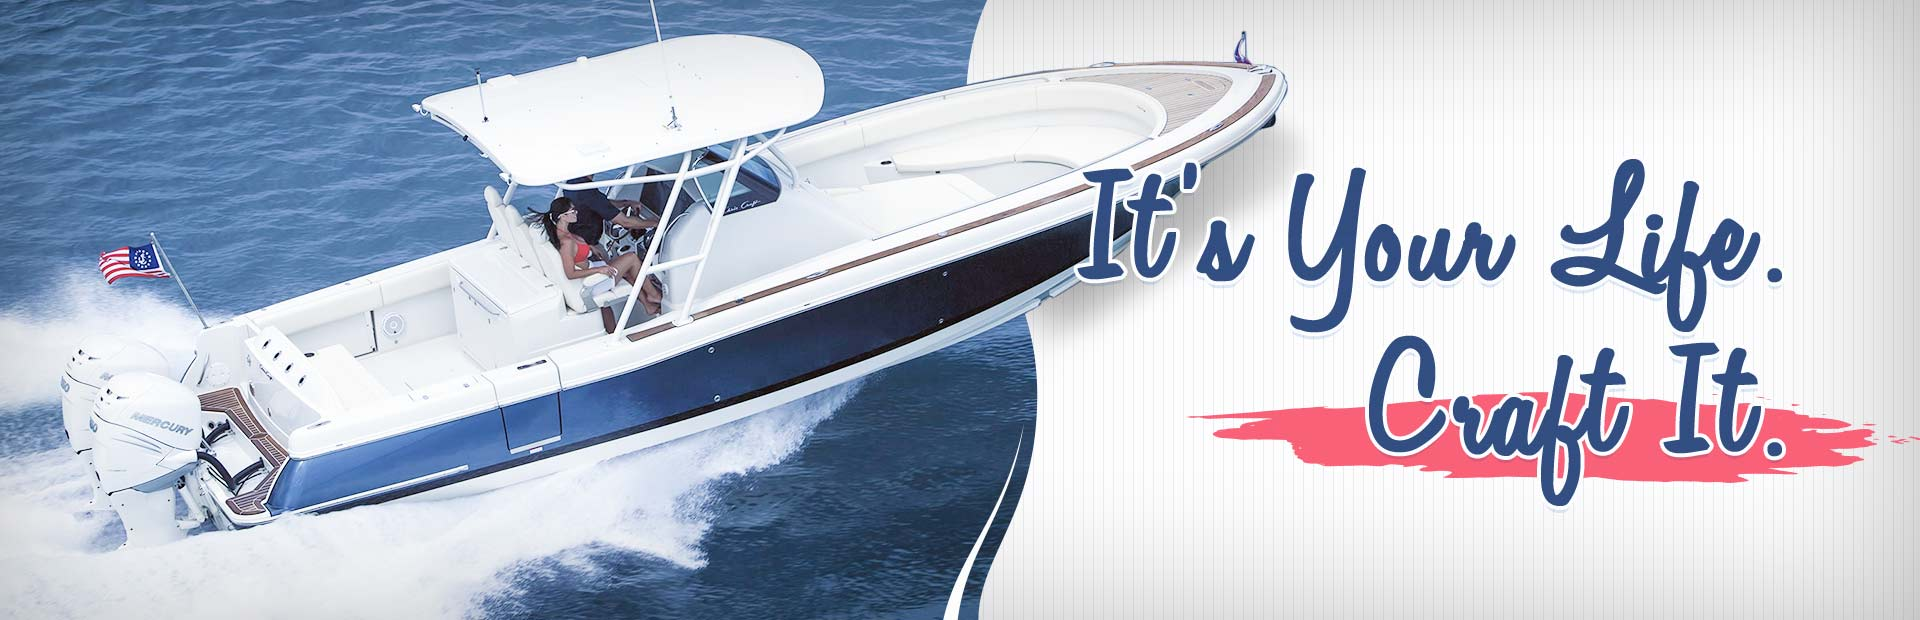 2018 Chris Craft Catalina 34: Click here to view the model.